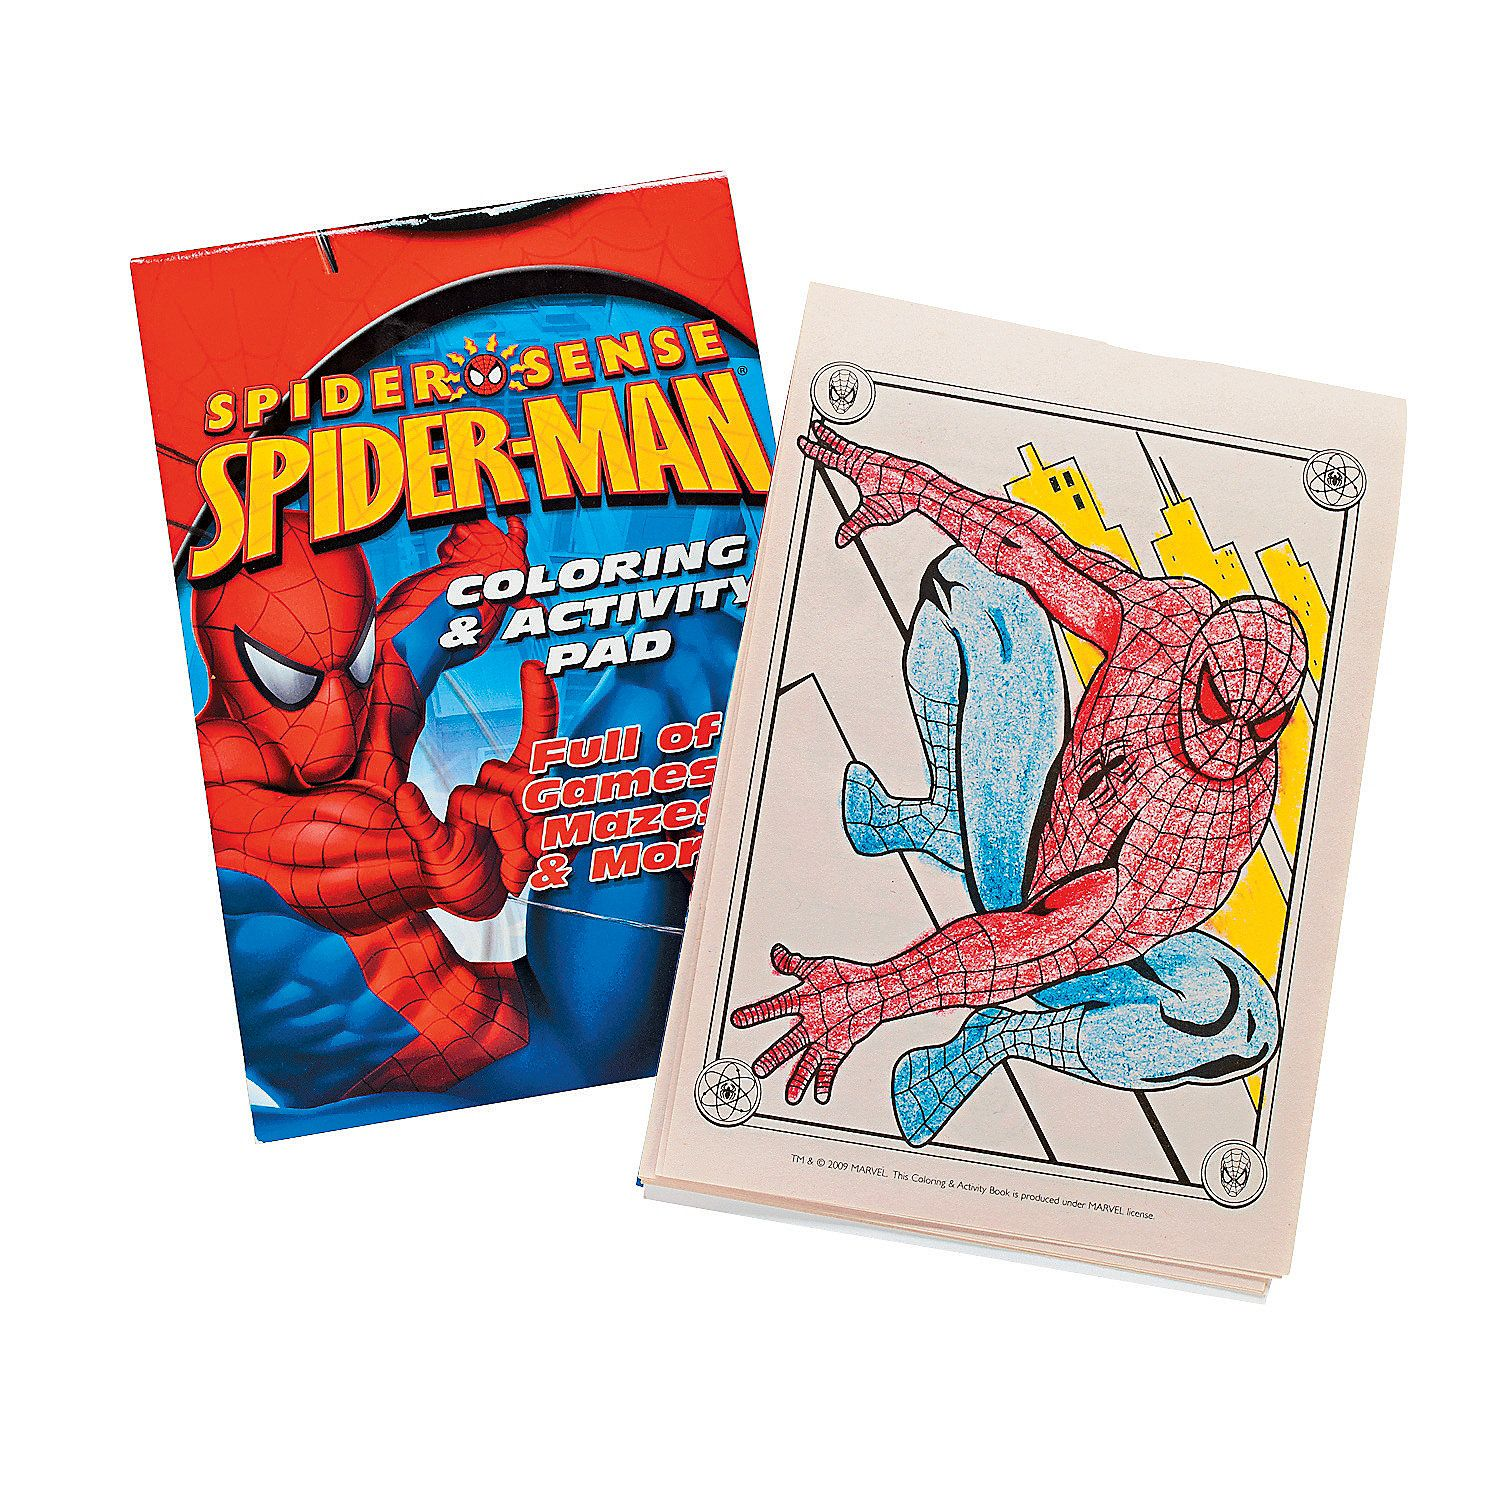 Spider Man Coloring Activity Book Cover Art May Vary By Bendon Publising 4 98 Spider Man Jumbo Colori Book Cover Art Color Activities Childrens Drawings